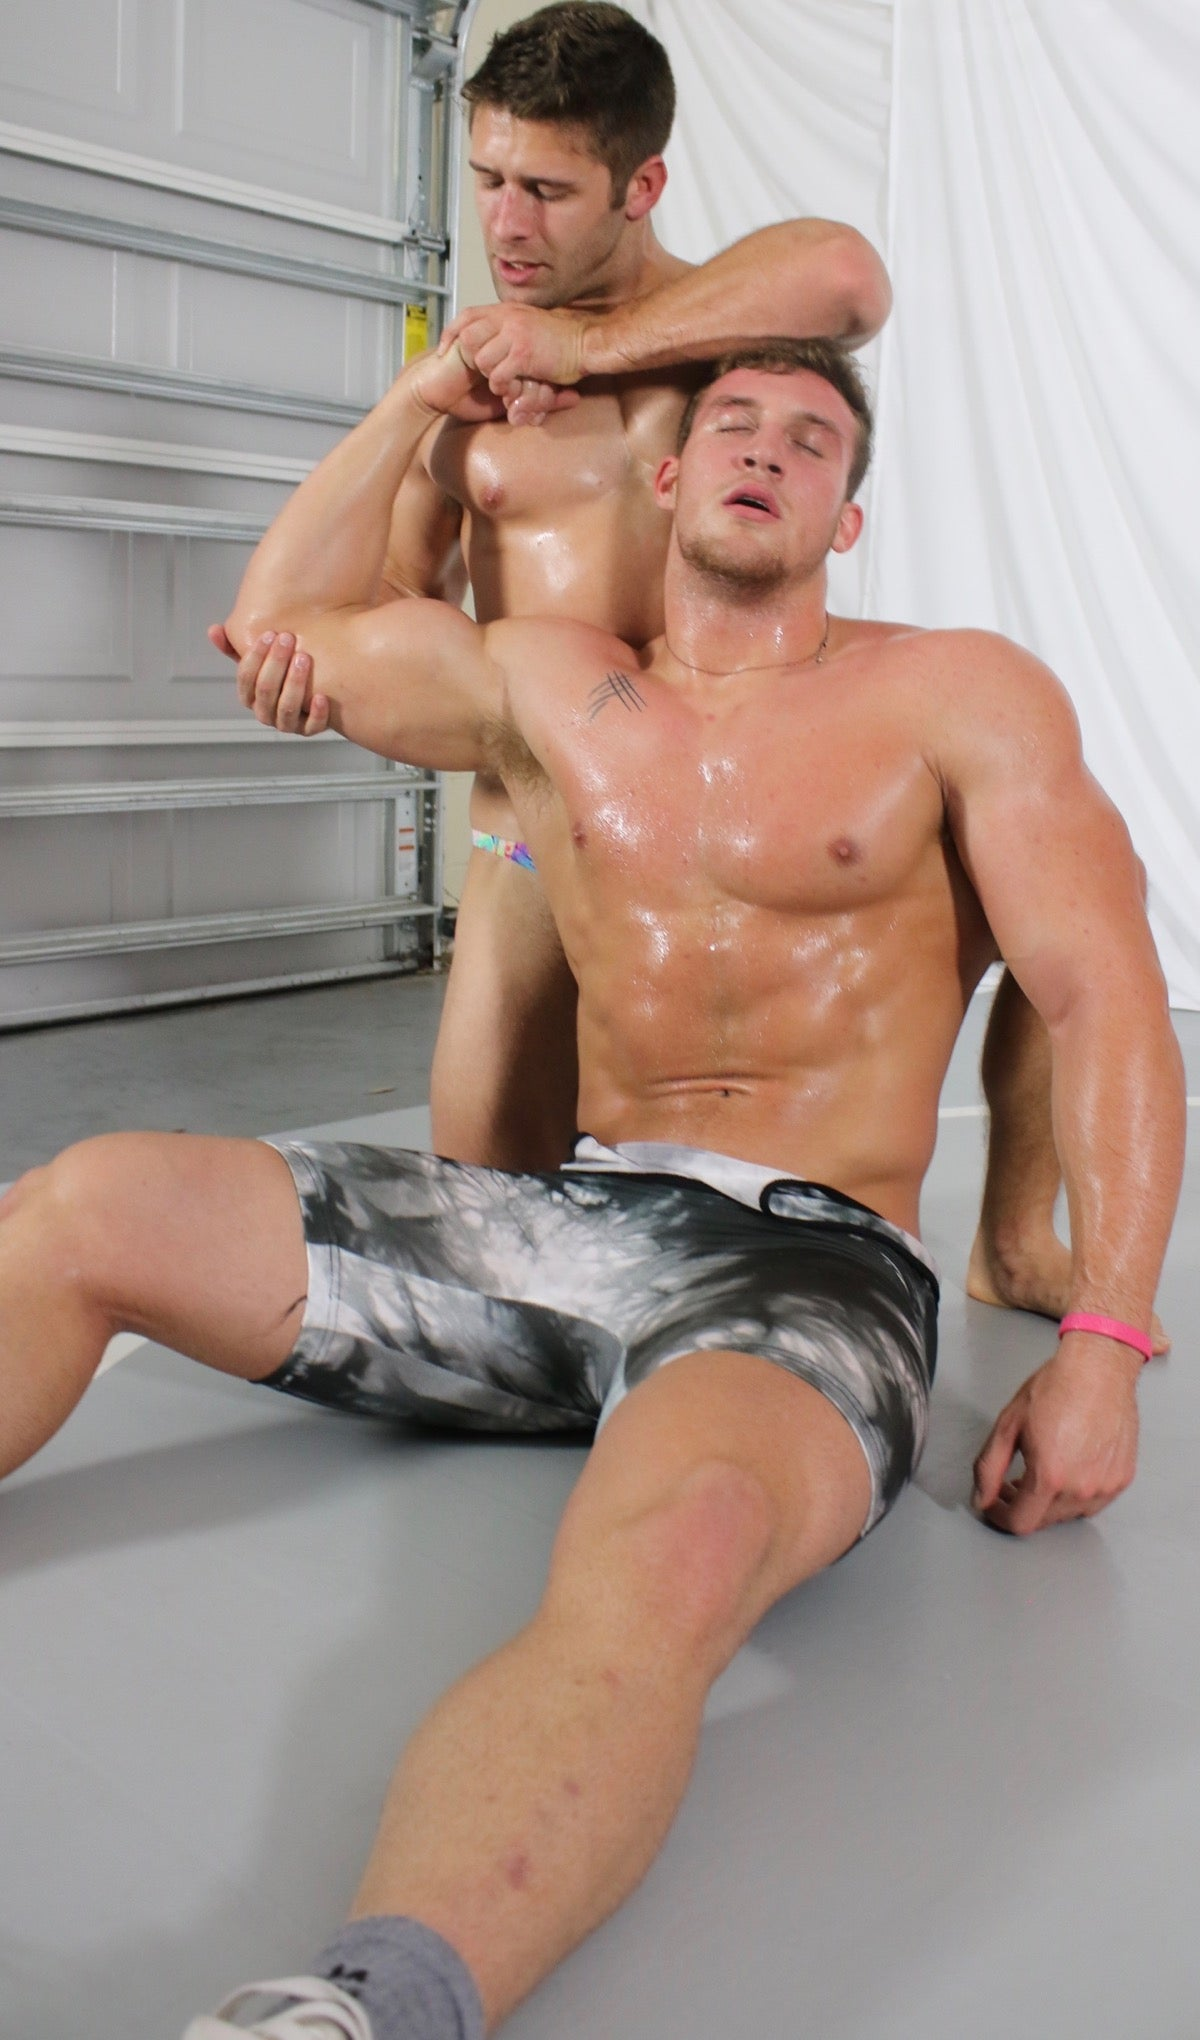 Cason from thunders arena wrestling fucks hot chick - 3 7